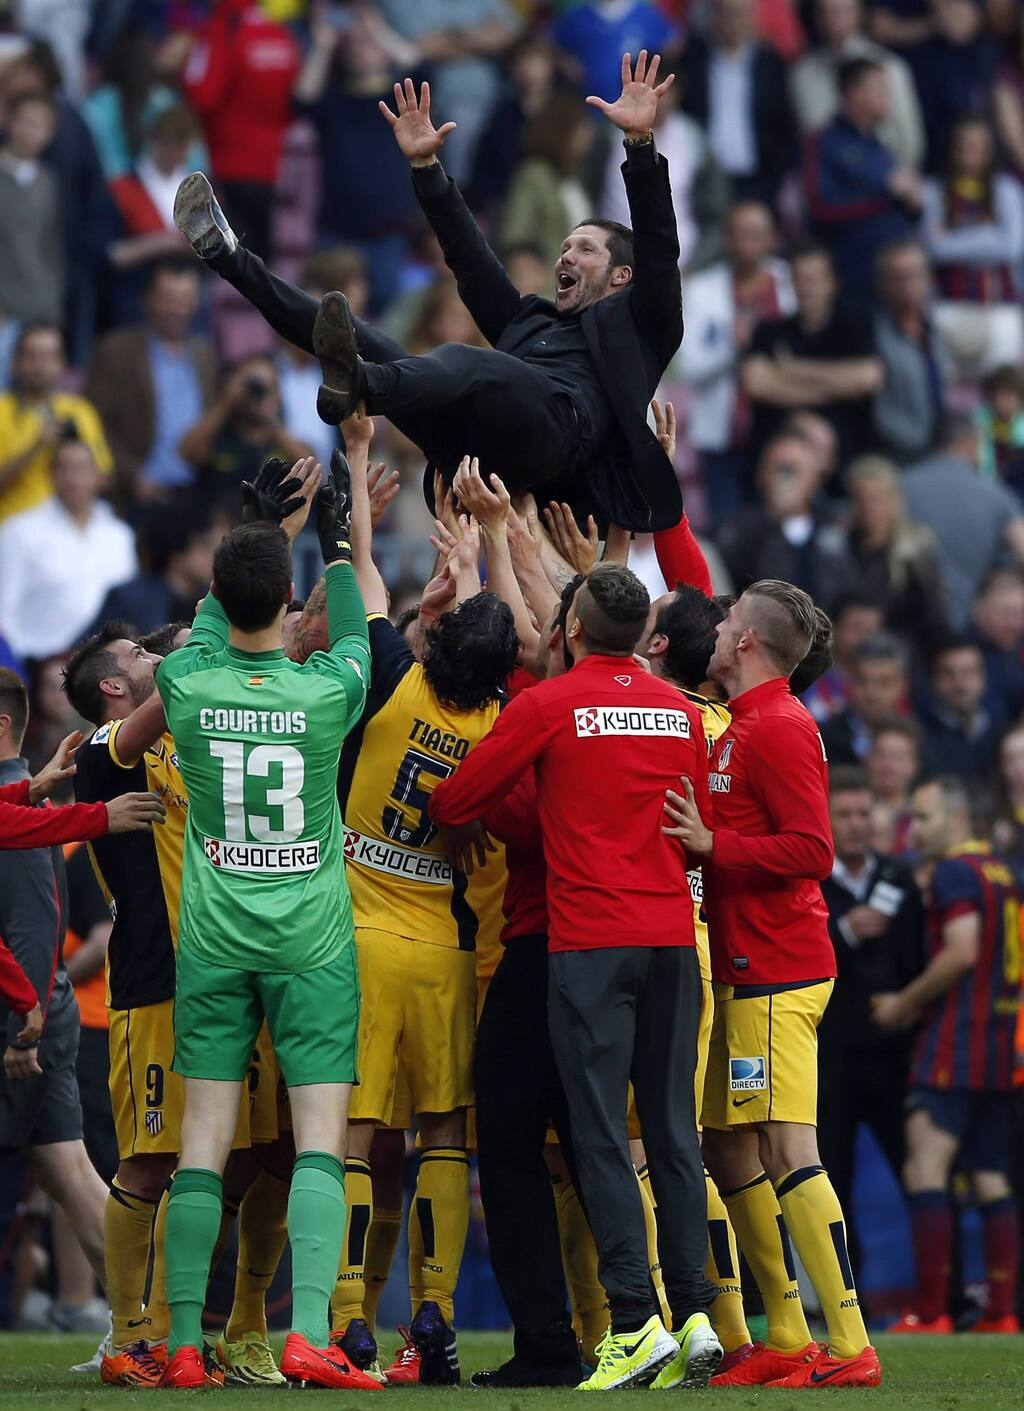 So it ended well.  Simeone is celebrating a championship in 2014